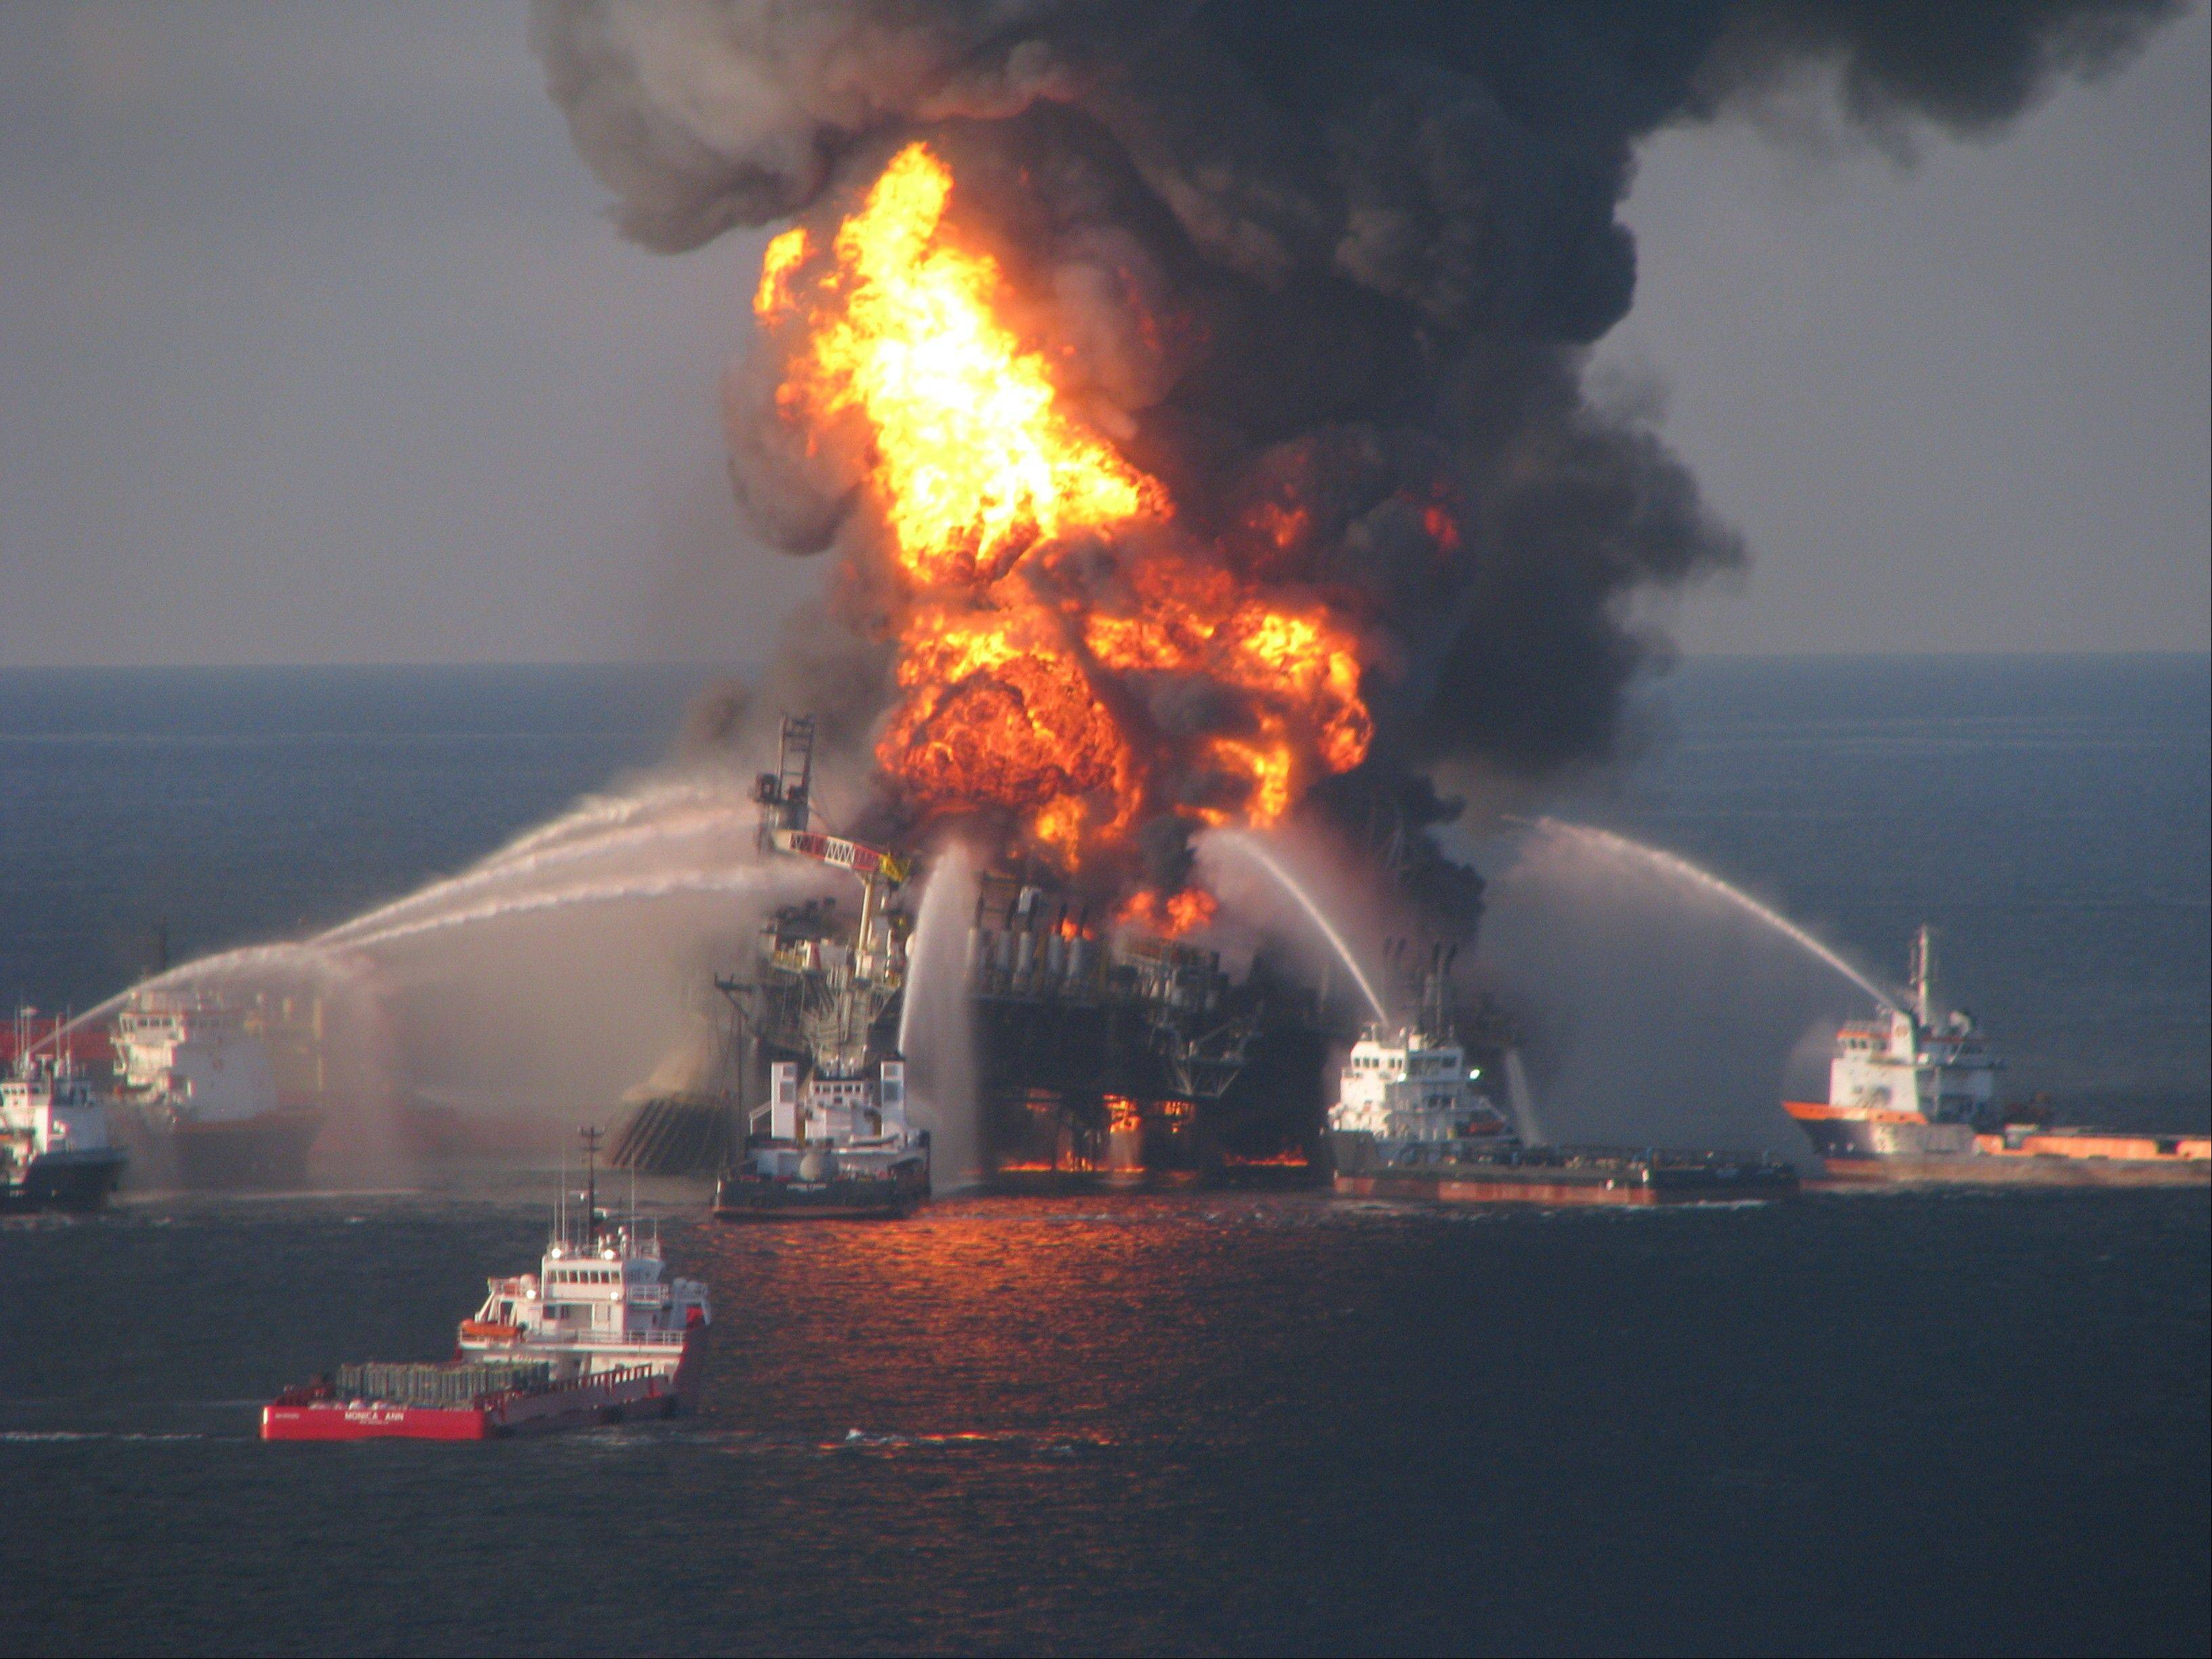 Associated Press In this April 21, 2010 image fire boat response crews battle the blazing remnants of the off shore oil rig Deepwater Horizon.